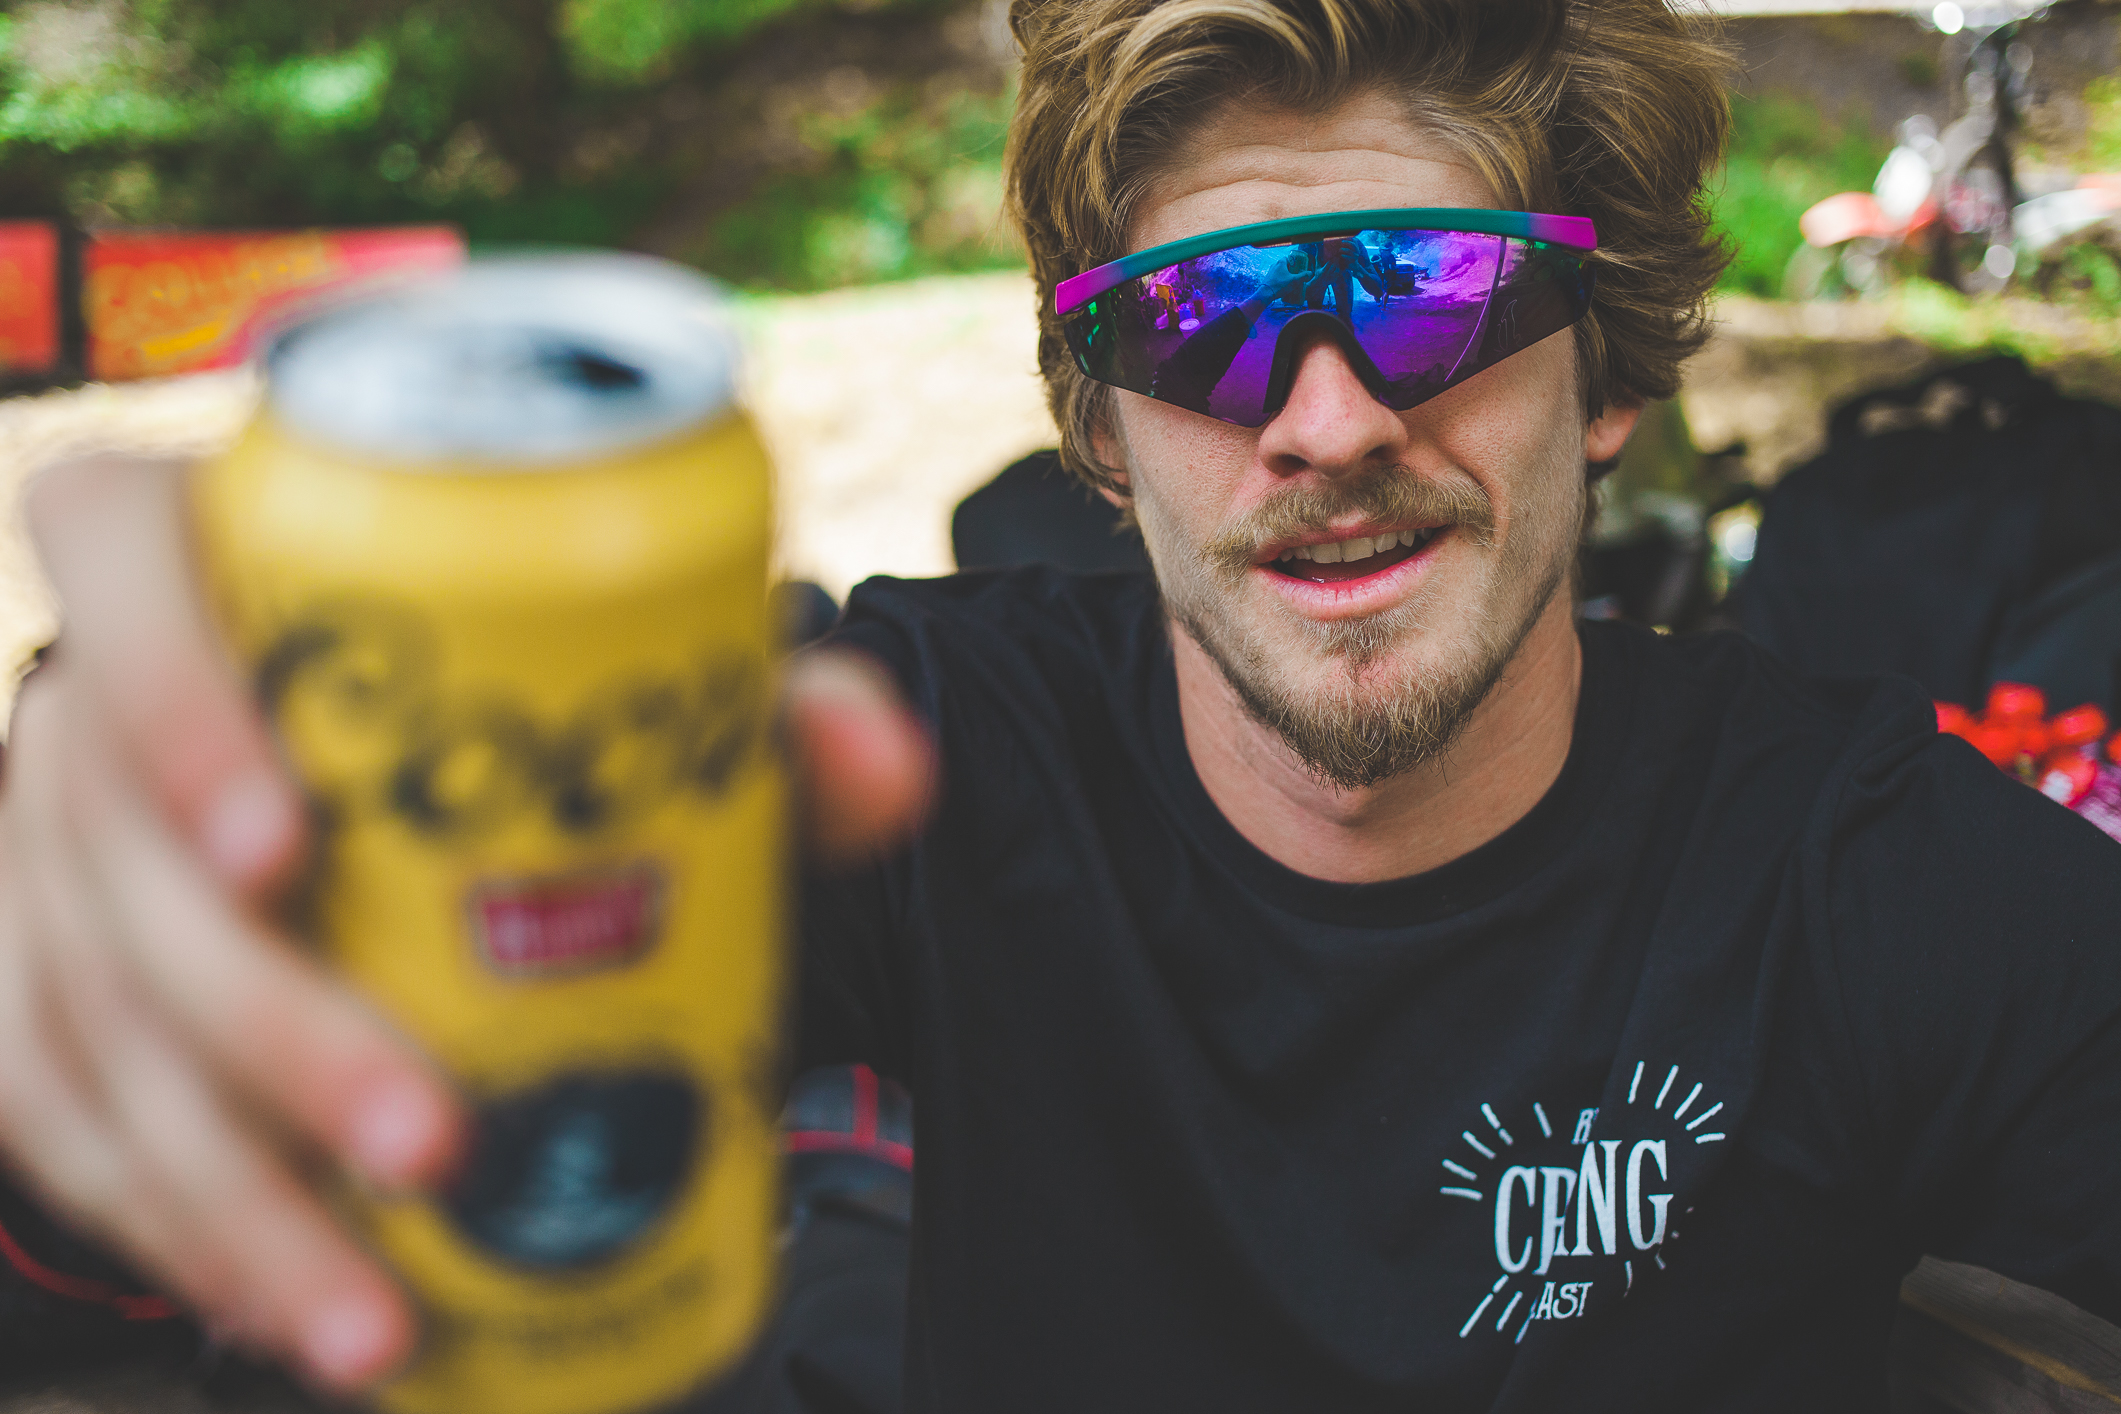 Spanish TV commercial actor and all around extreme sports rider Topo made it to CruzFest as he is filming the riding and lifestyle of his longtime friend Andreu Lacondeguy during a 2 month trip around the USA and Canada.